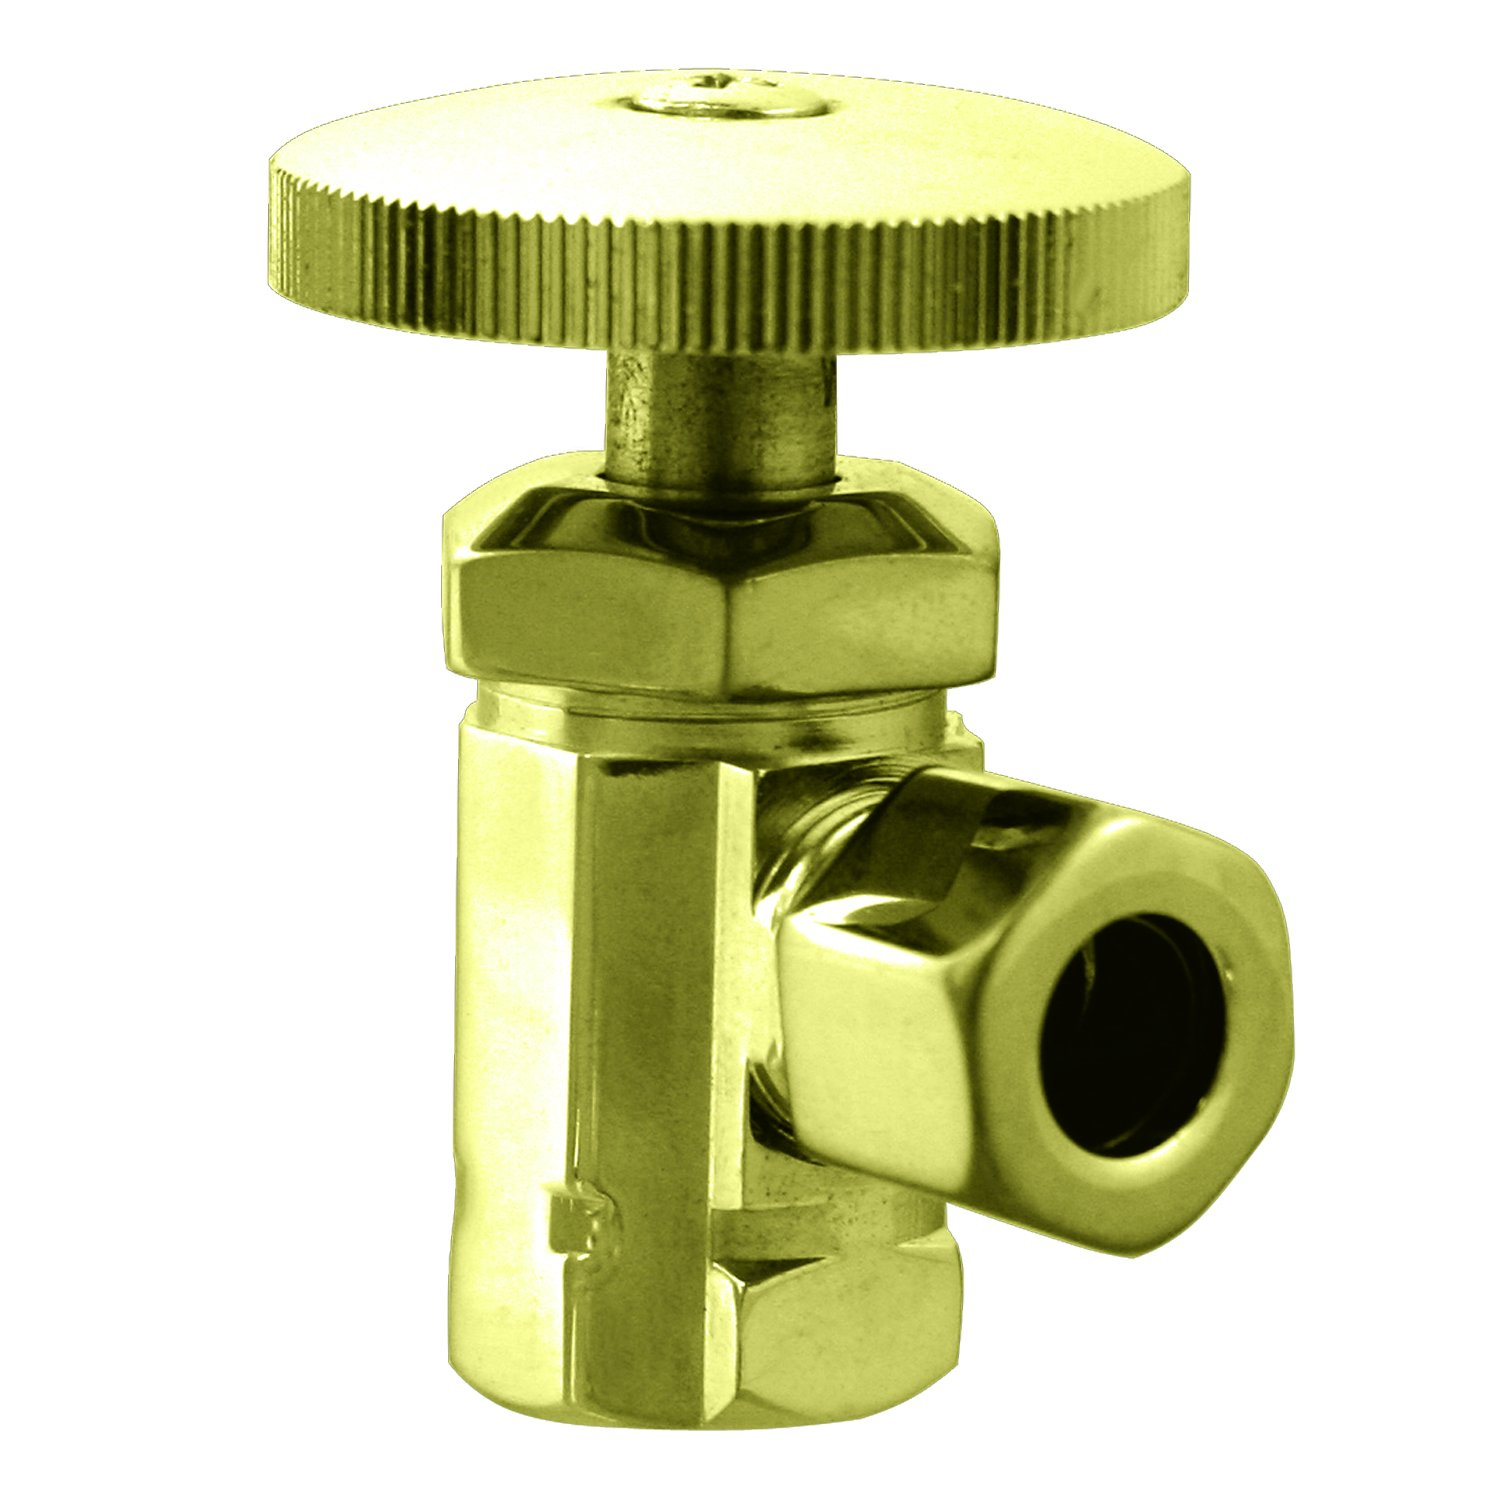 Westbrass D106-24 IPS Angle Stop, Polished Gold